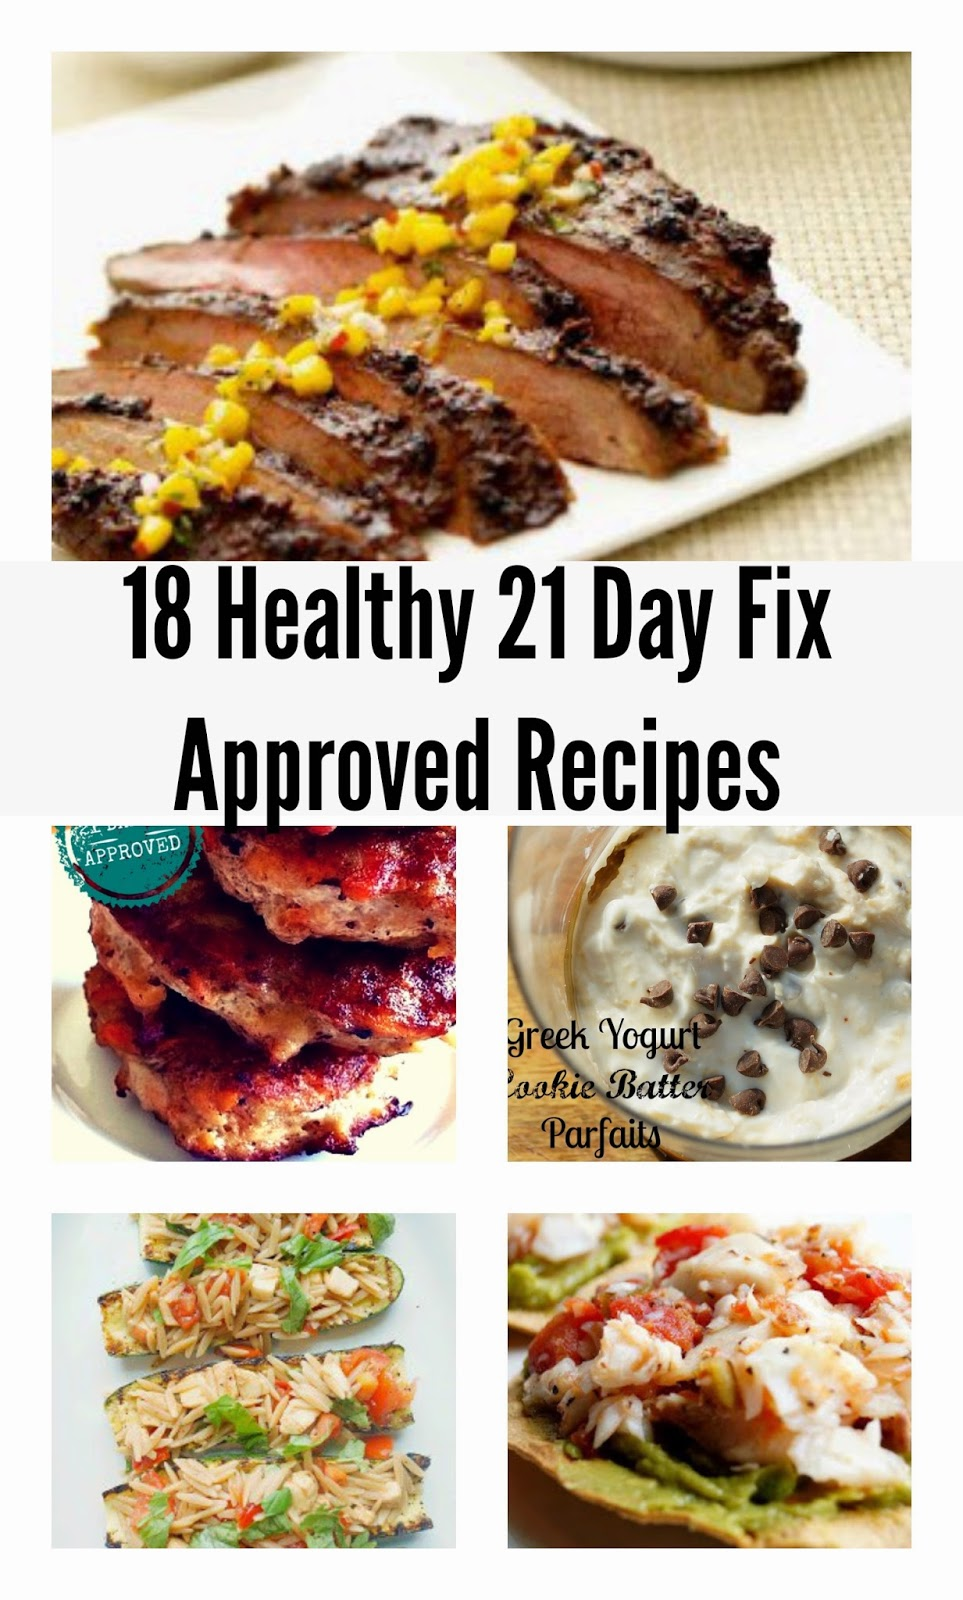 18 21 Day Fix Recipes!